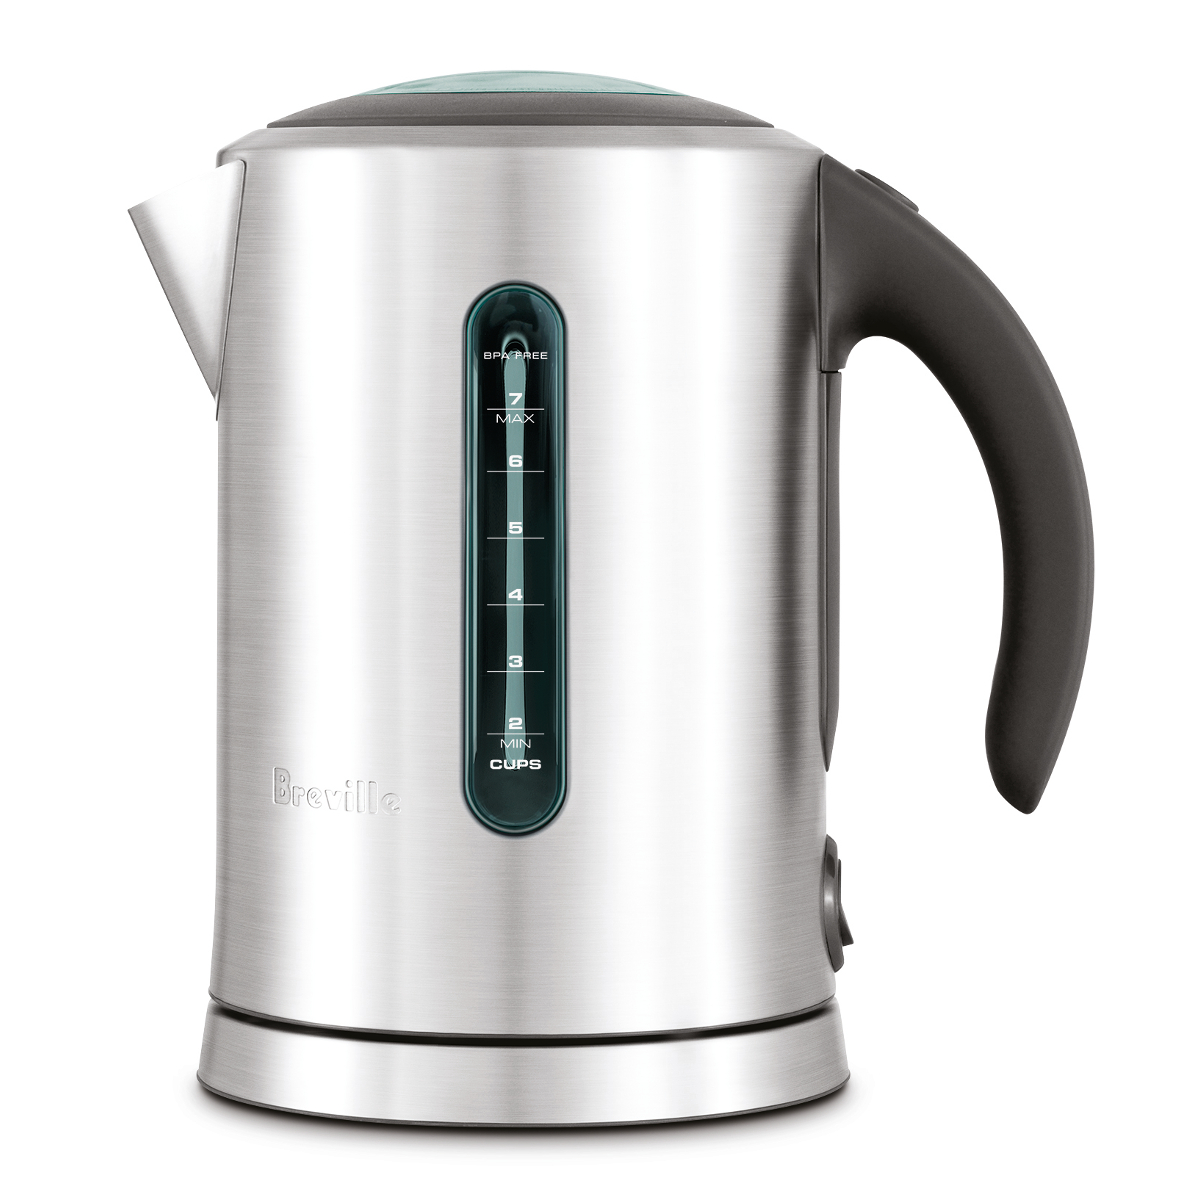 Breville the Soft Top Brushed Stainless Steel 1.7 Liter Electric Kettle